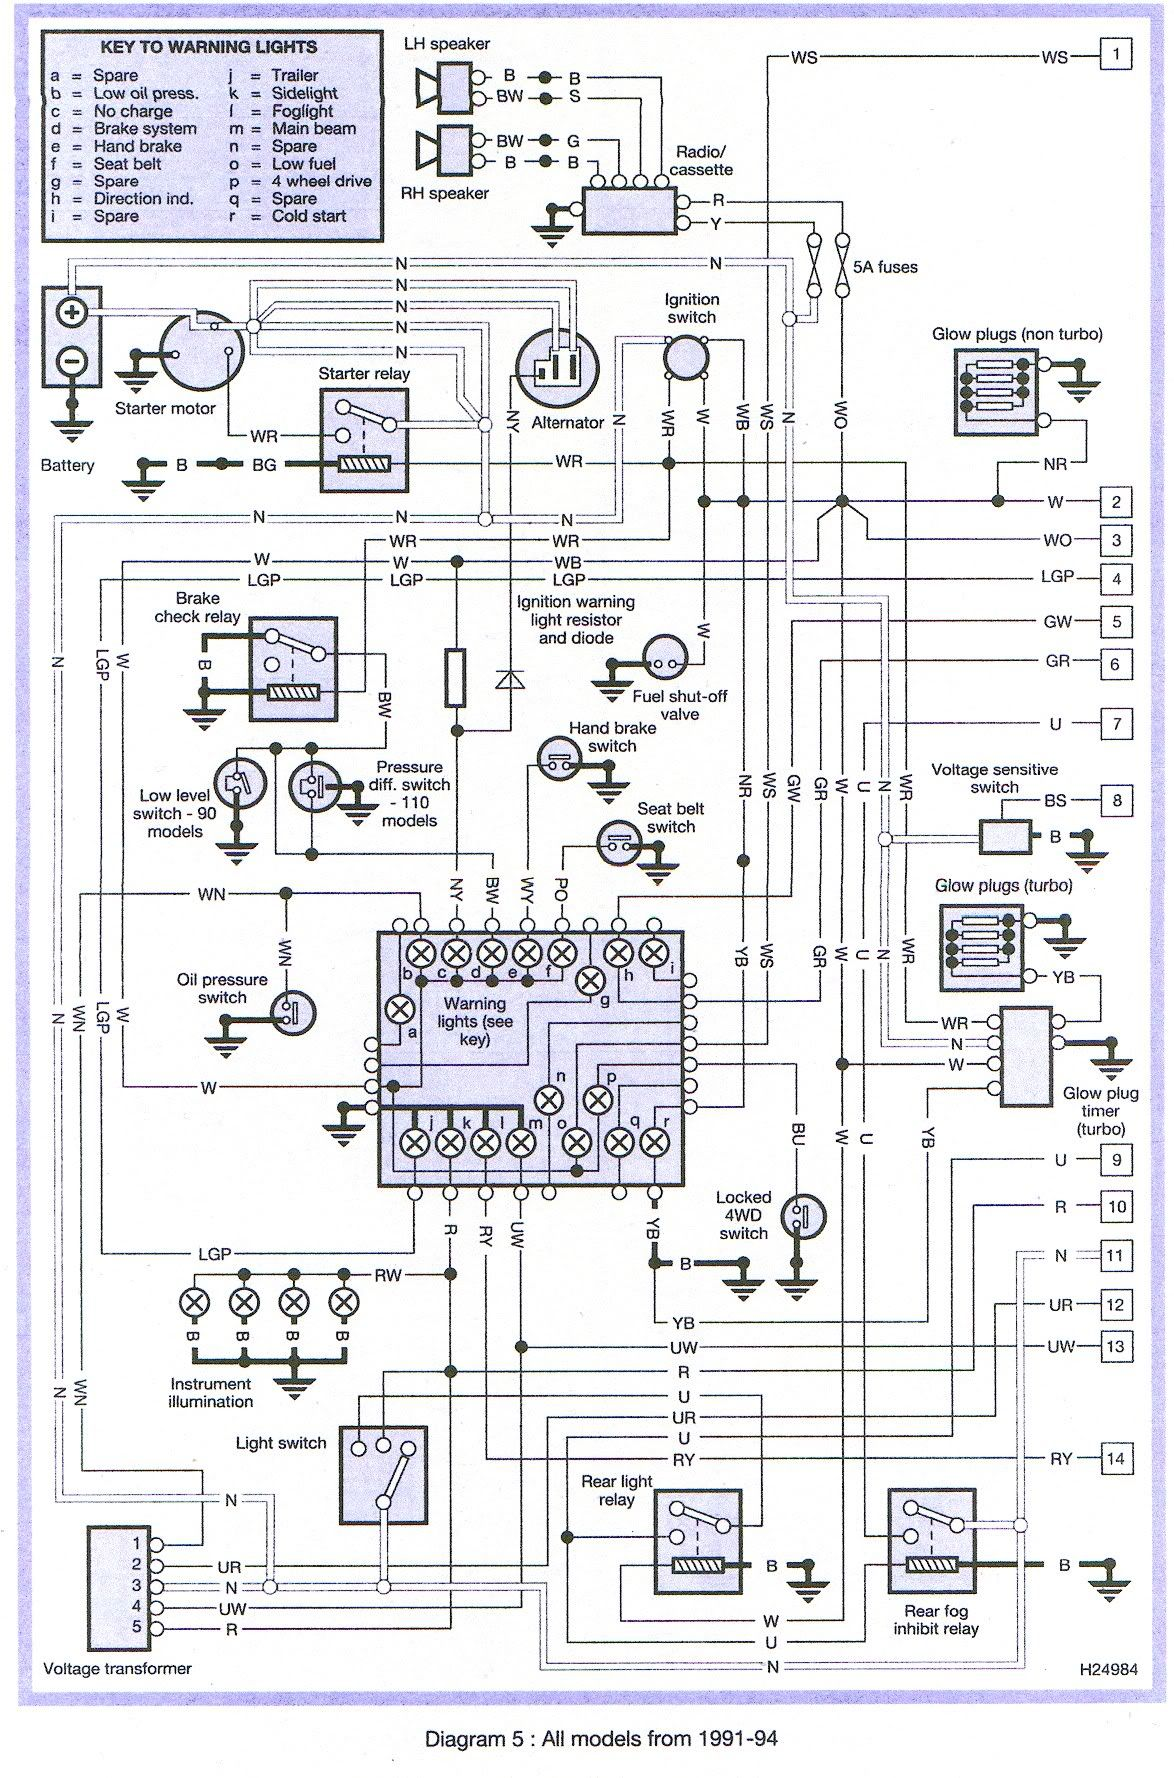 Range Rover P38 Wiring Diagram Pdf - Wiring Diagram K8 on